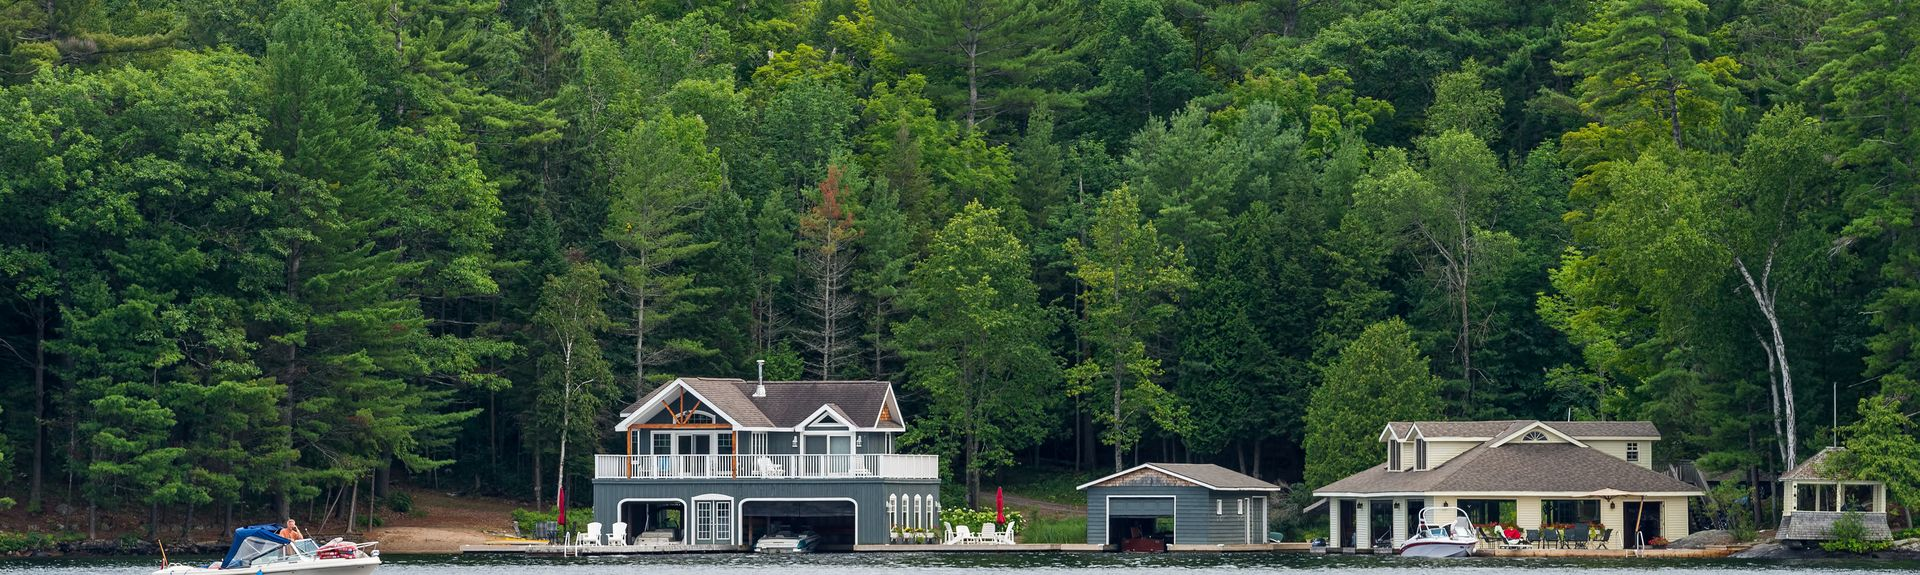 Lake Rosseau, CA Vacation Rentals: cottage rentals & more ...